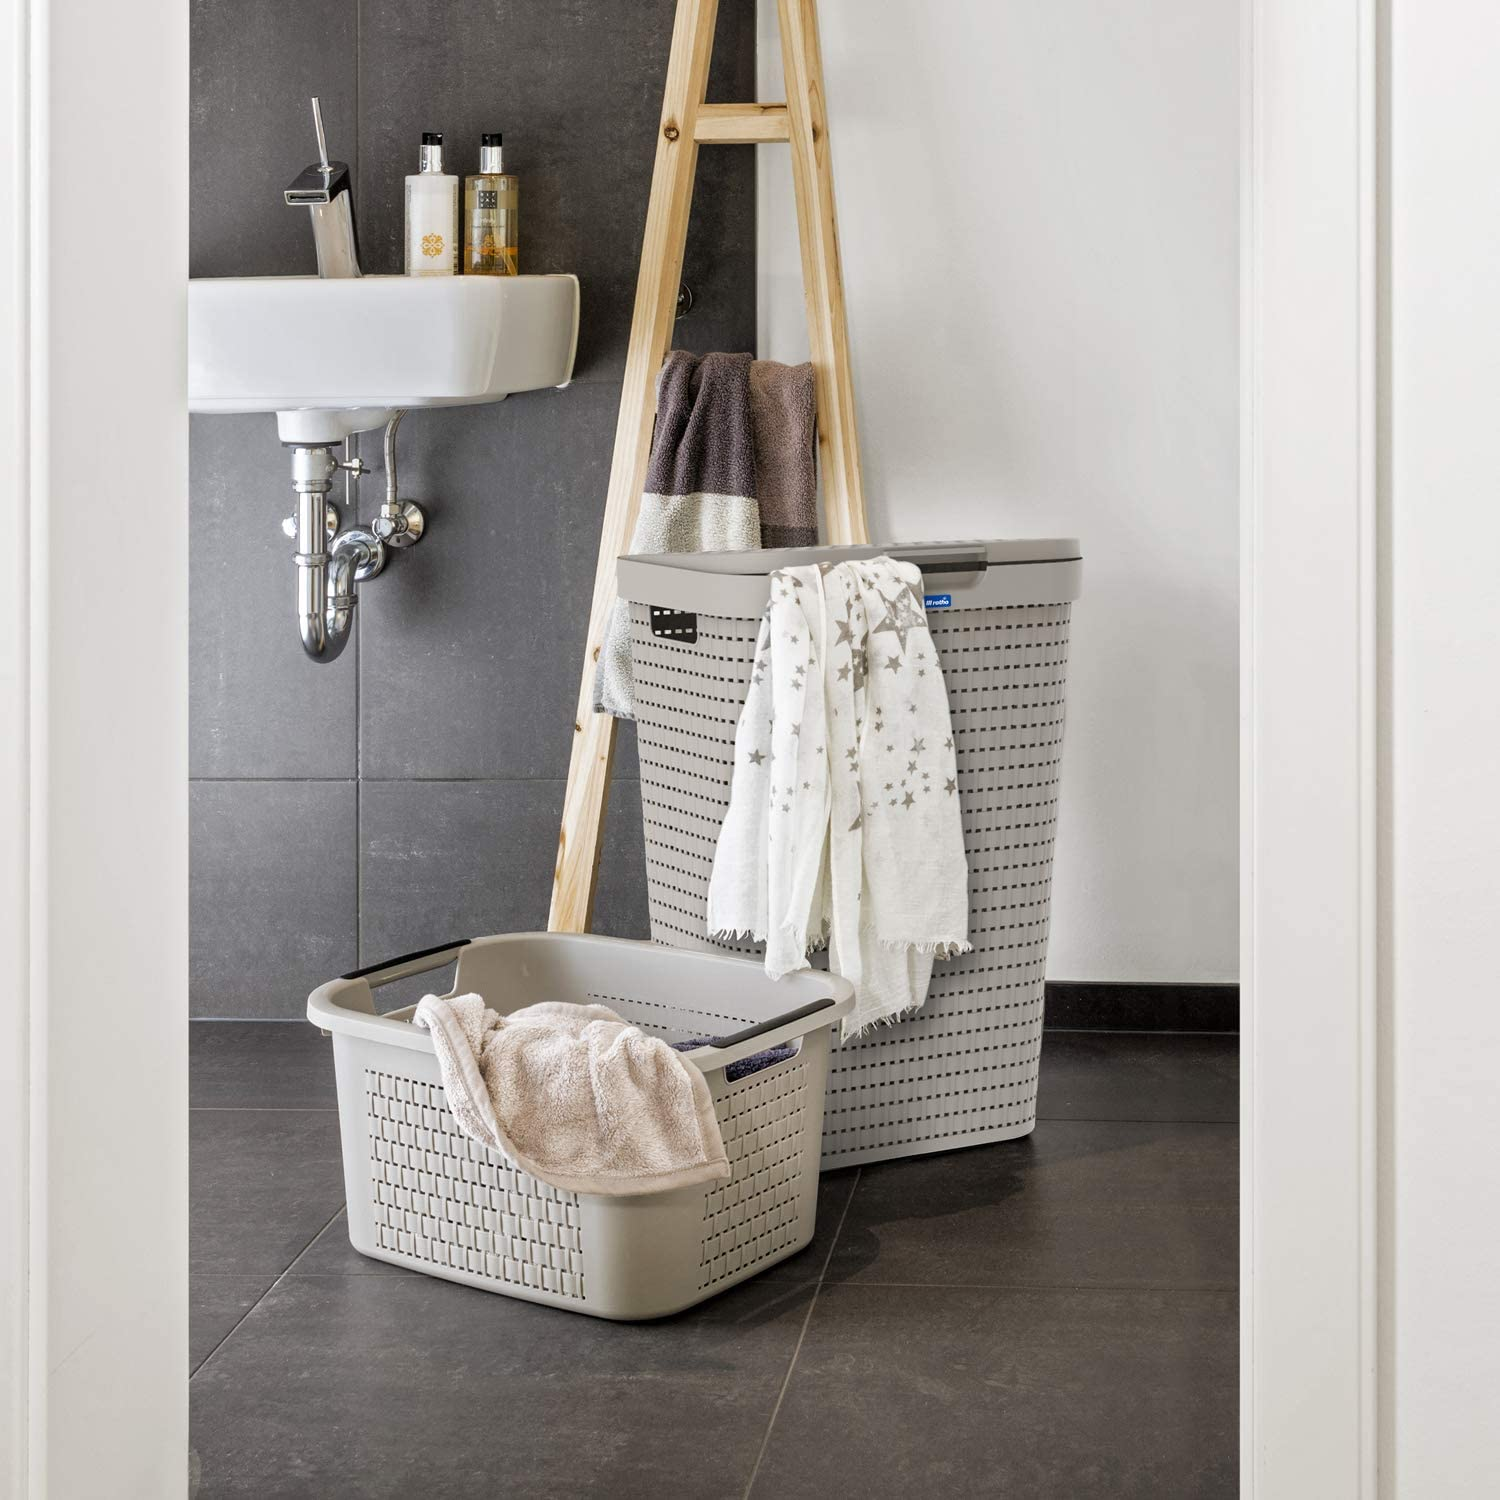 Cappuccino Rotho Country Laundry Basket lid in Rattan-Look BPA-Free Plastic , 42.0 x 32.2 x 57.7 cm PP 55l 42 x 32,2 x 57,7 cm